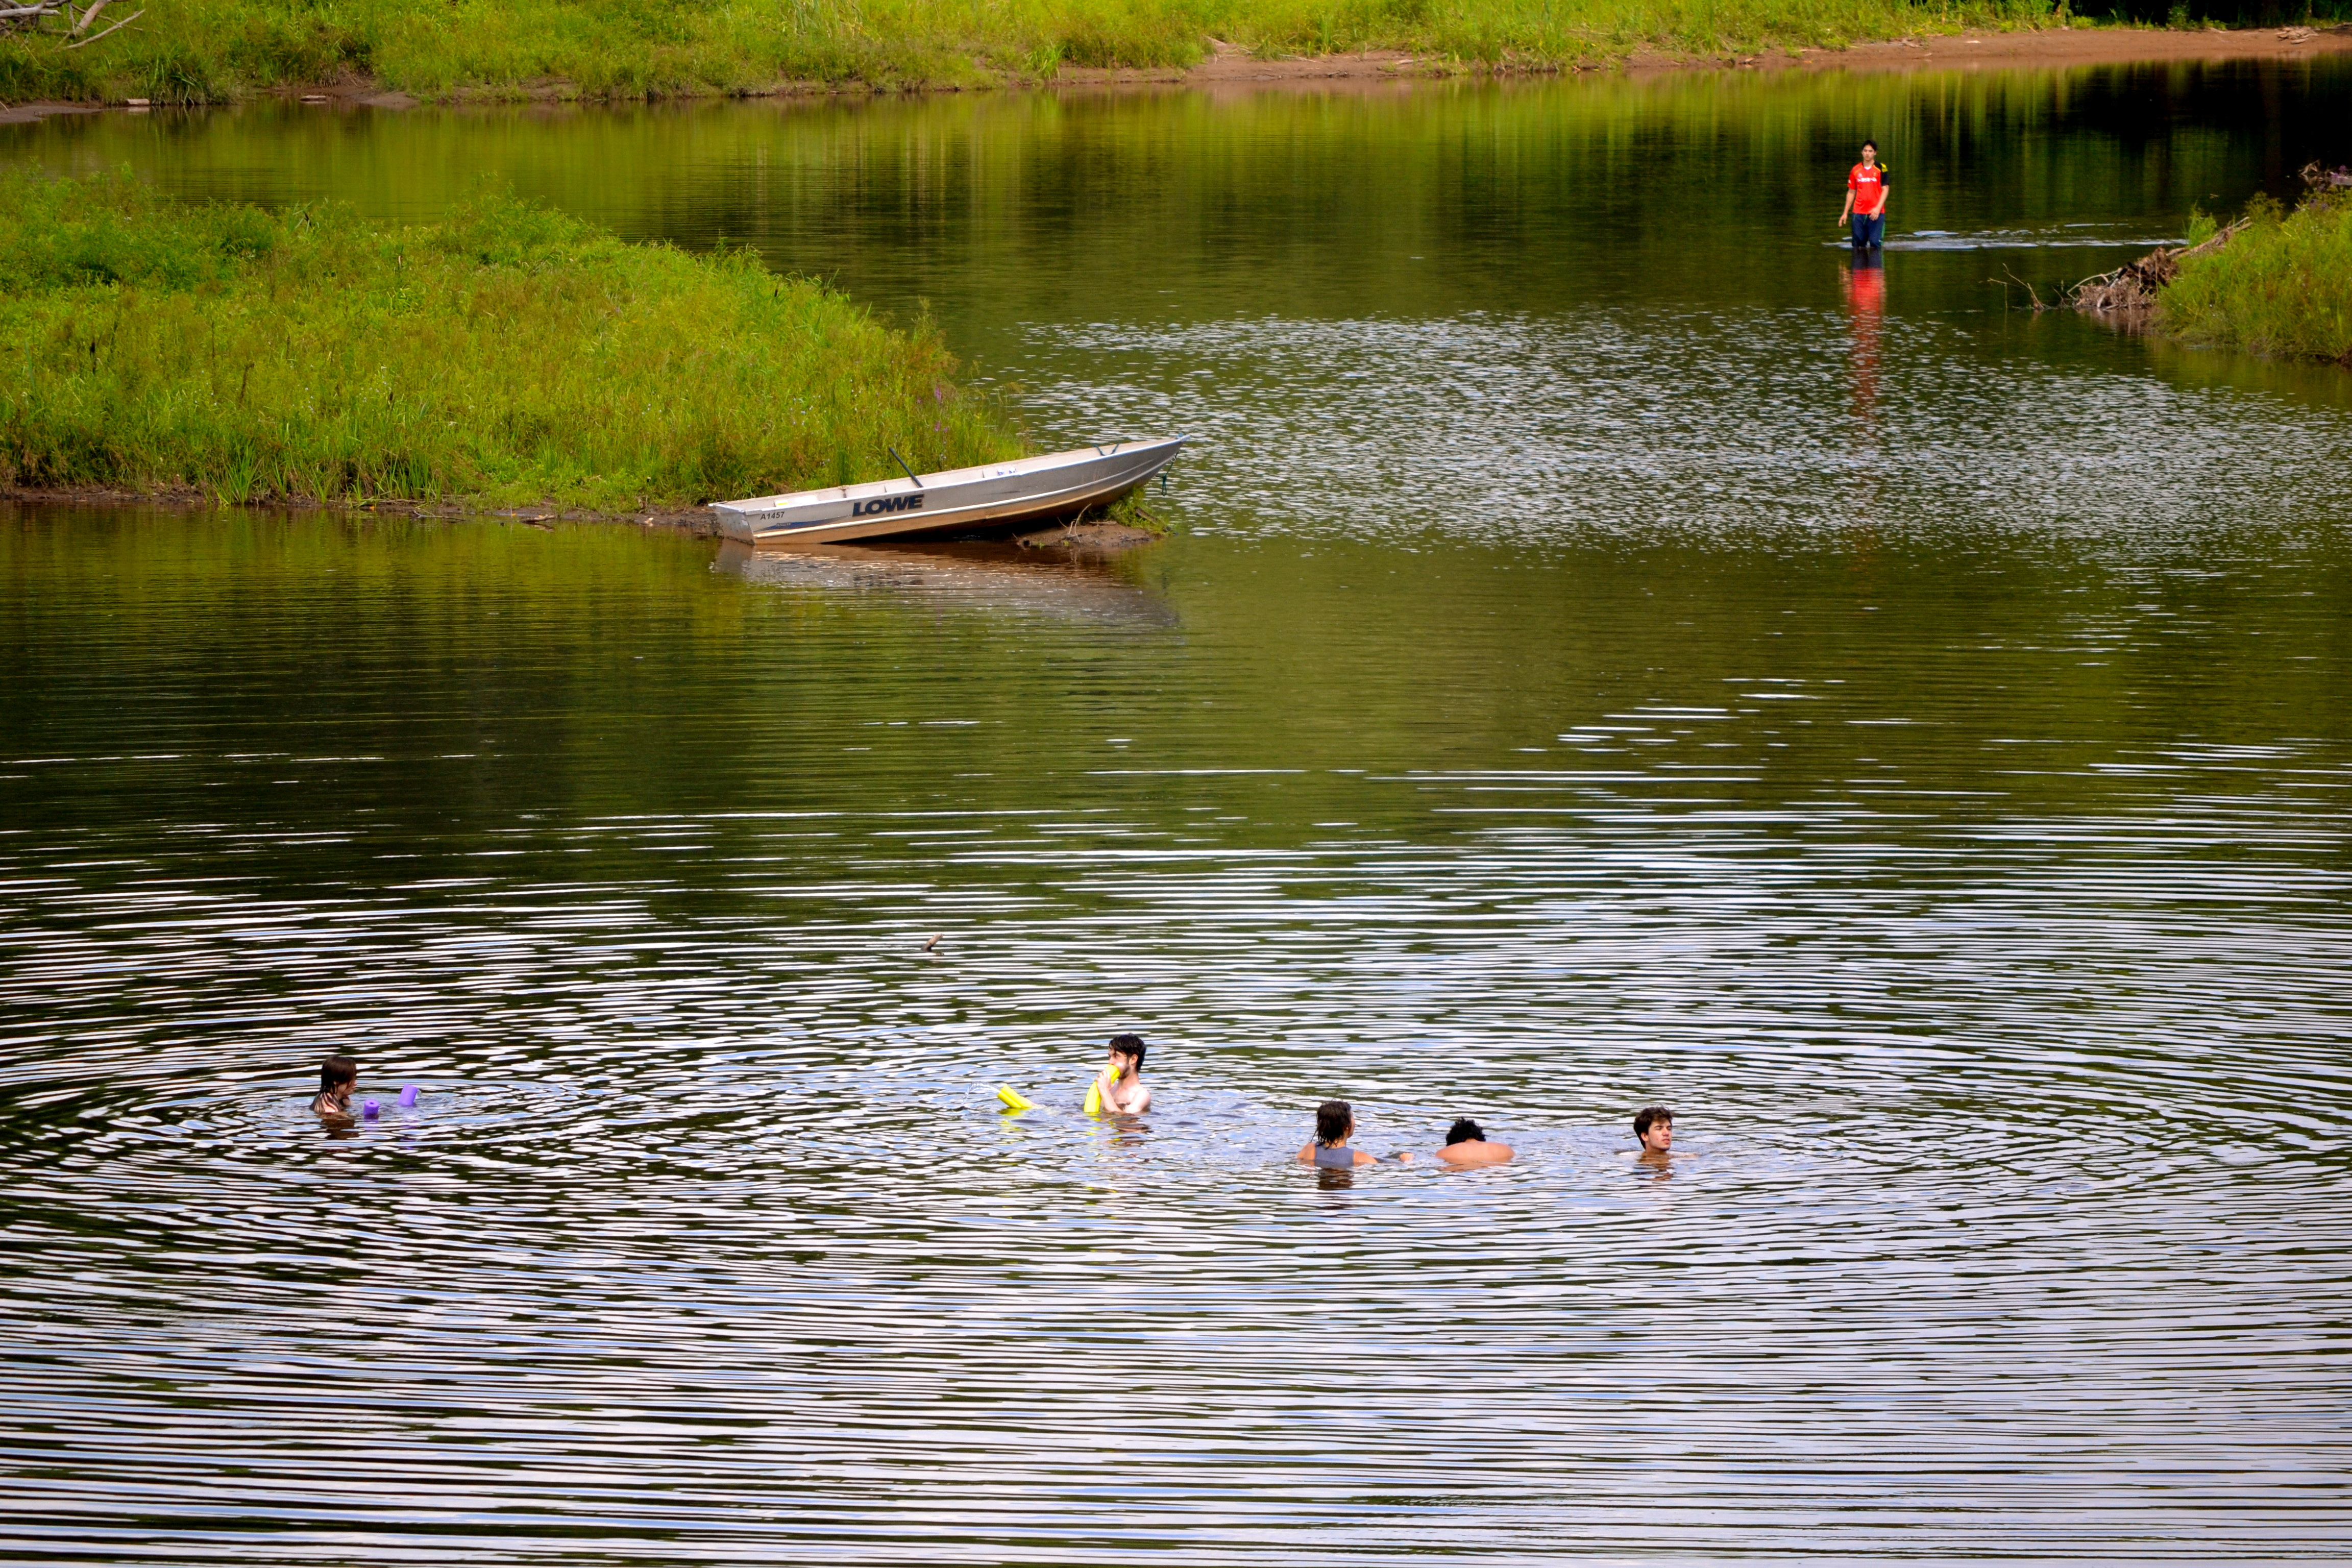 Swimming and rowing on the lake